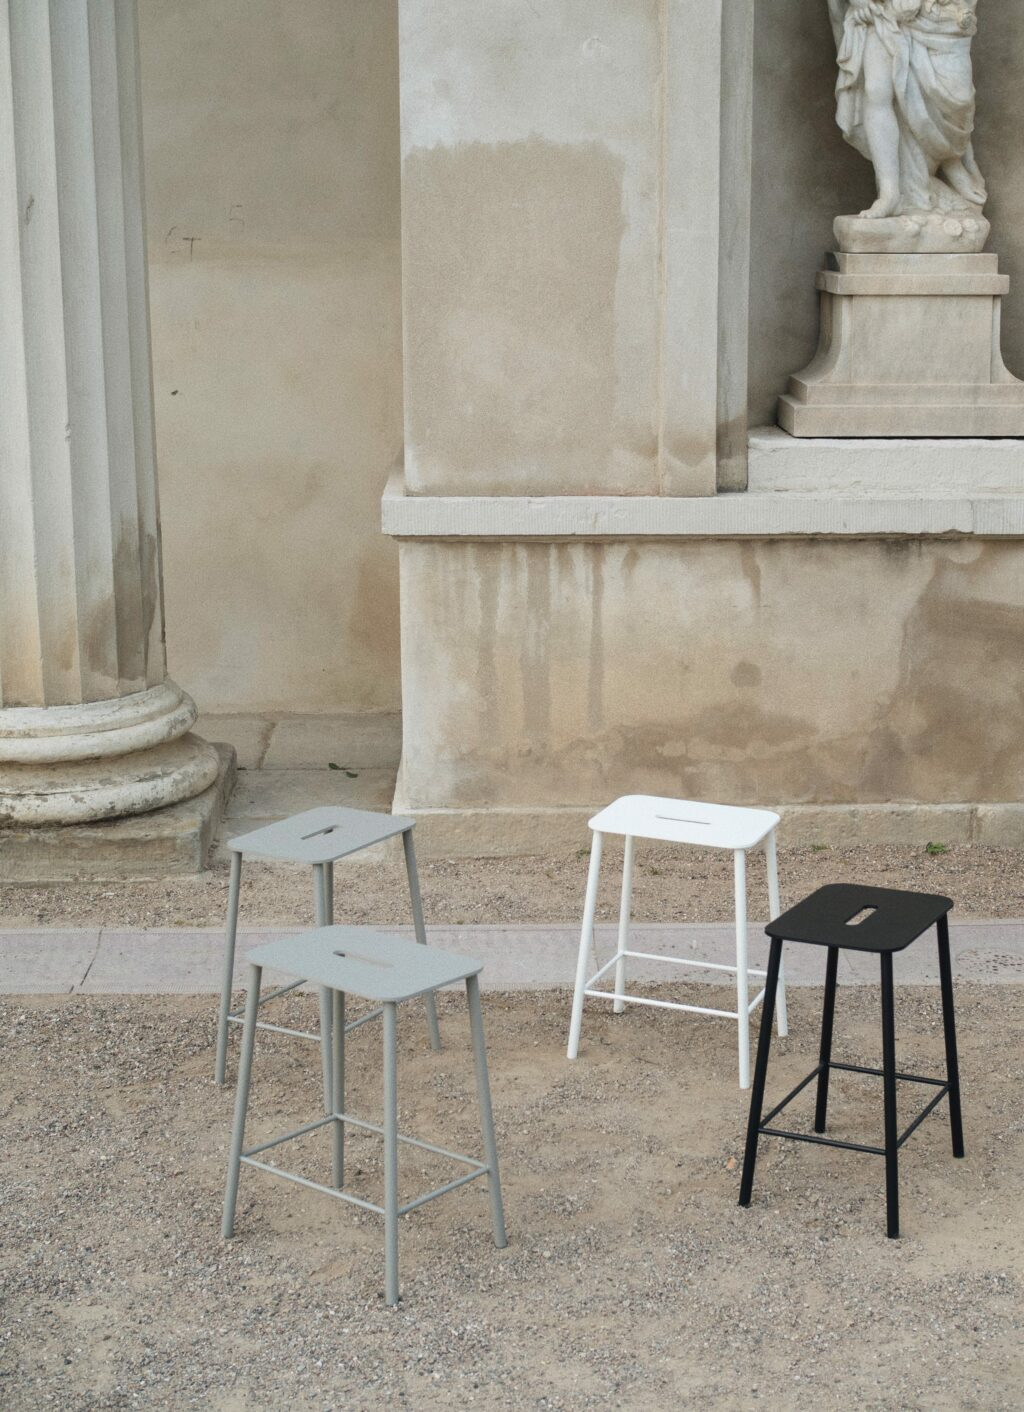 Adam Stool - Mono - Outdoor - available in 3 sizes and 3 colors